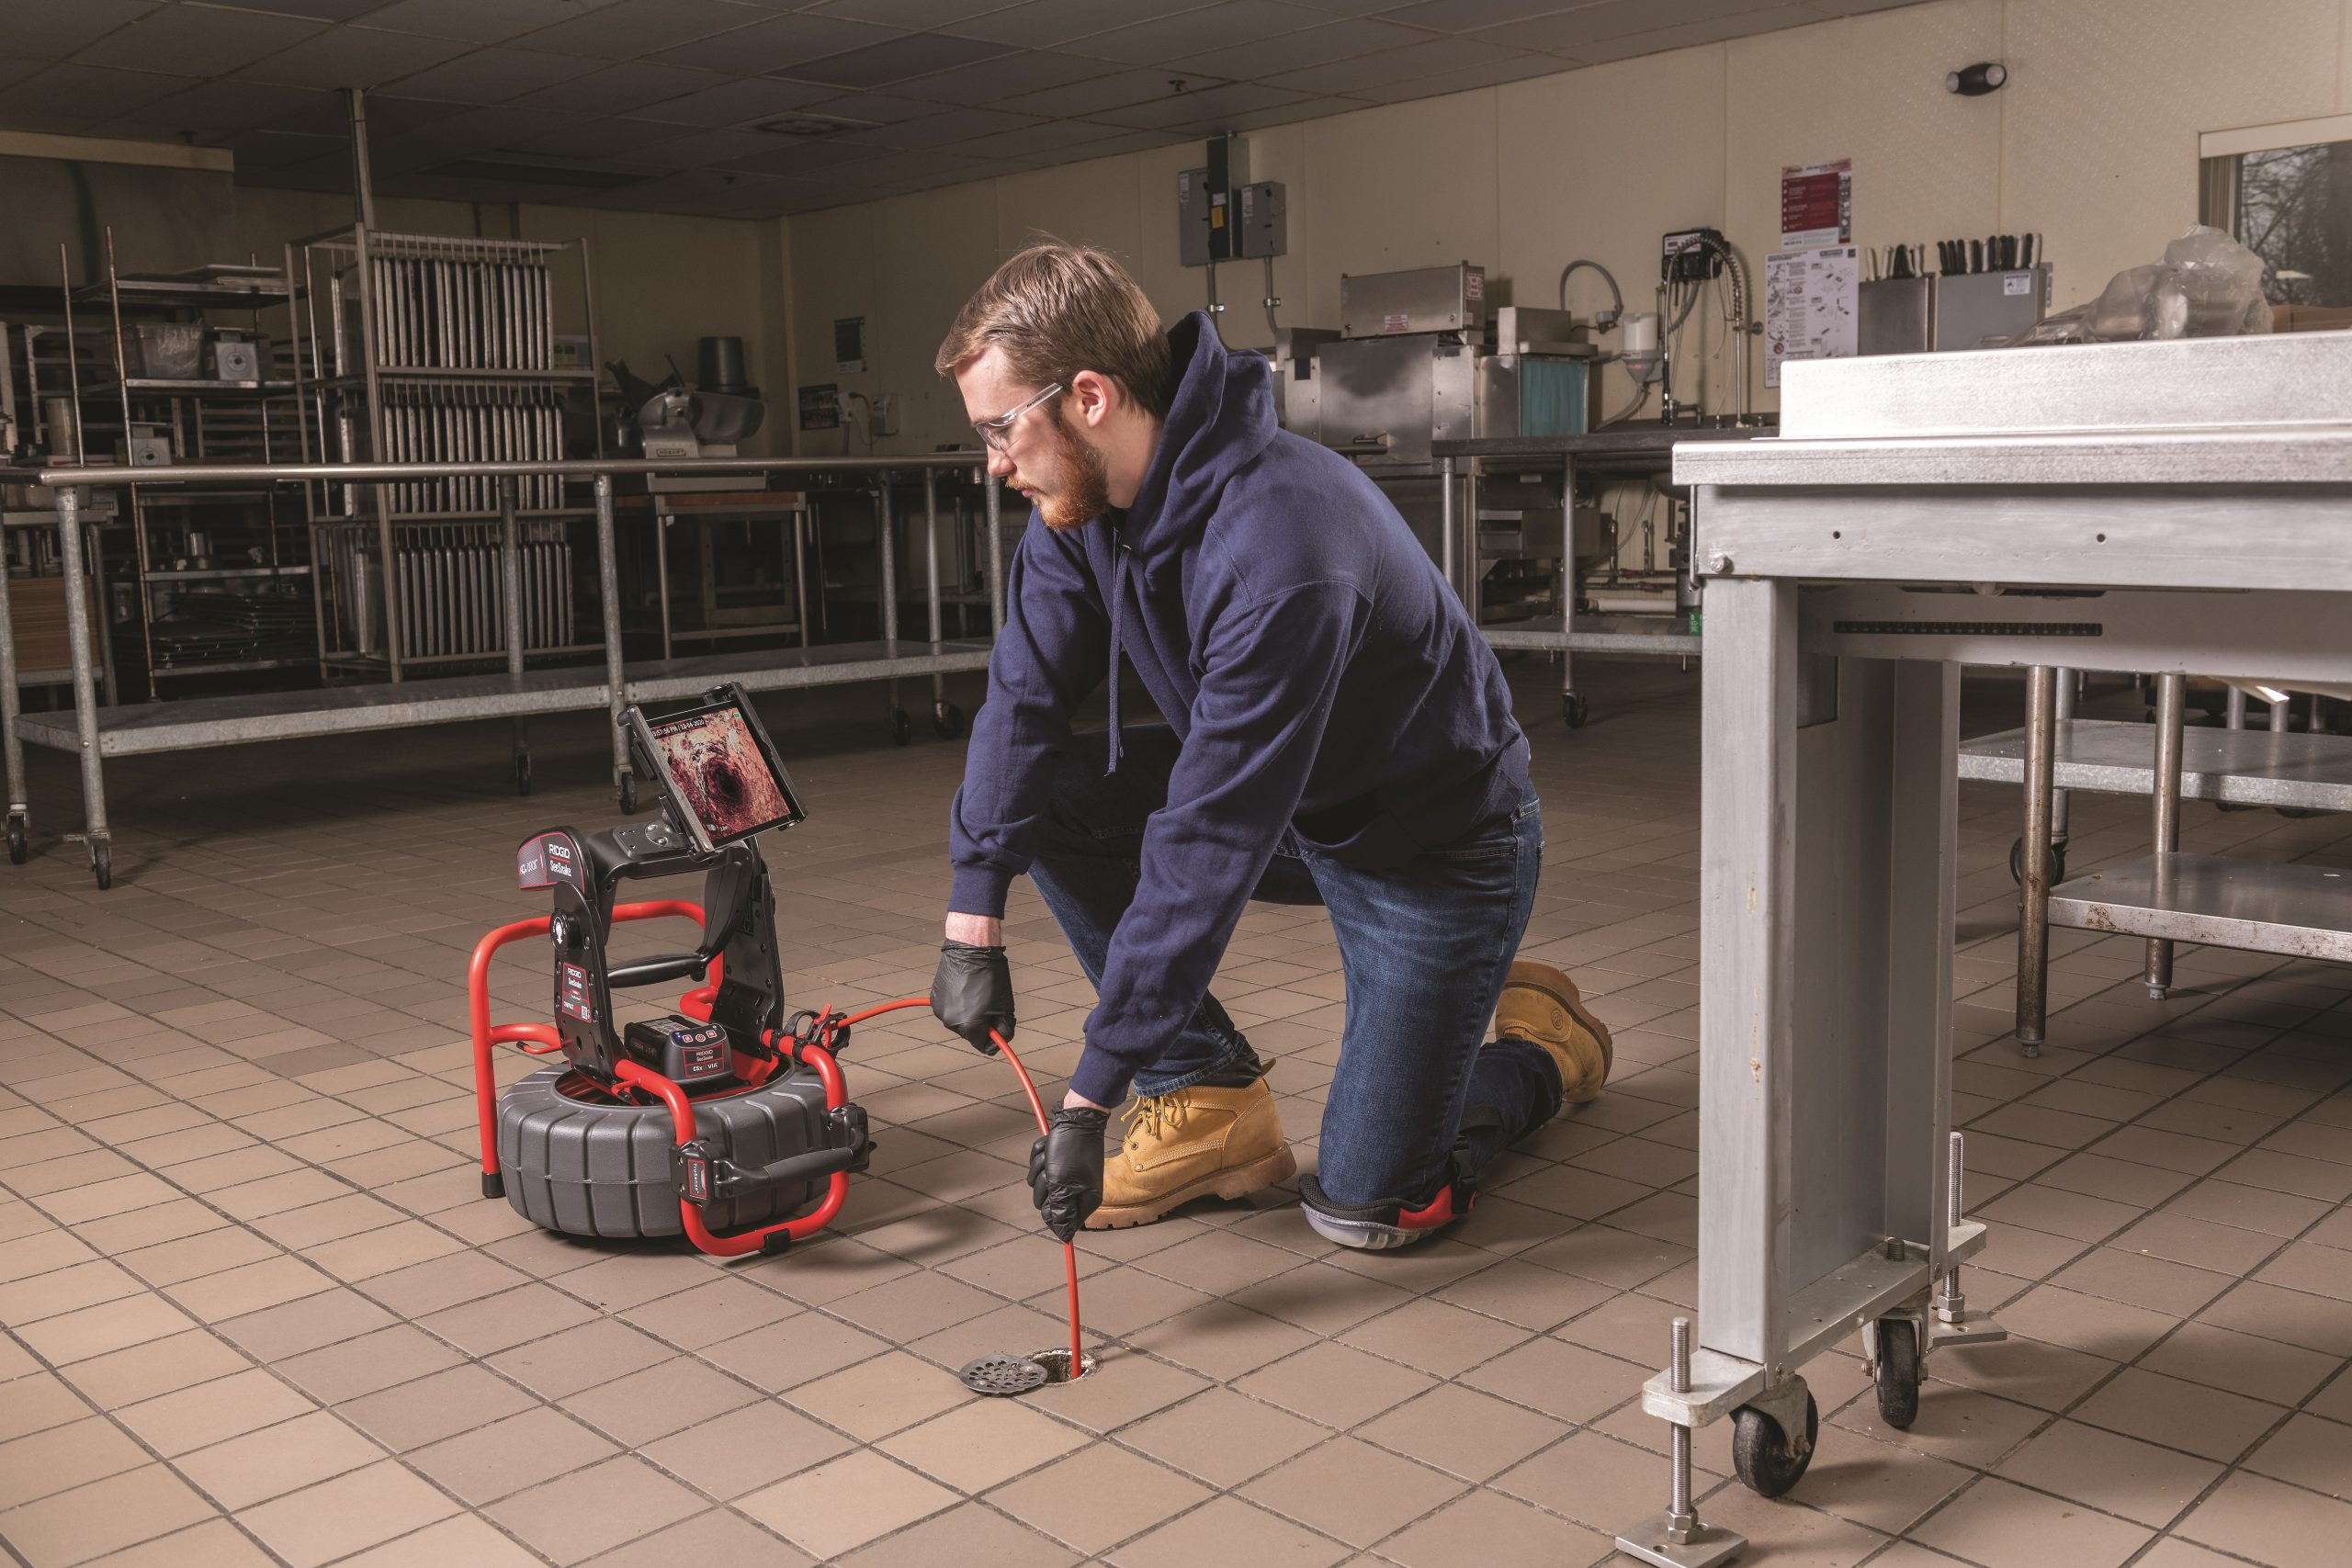 RIDGID's SeeSnake CSx Via Reel Is a Convenient Means to Stream, Capture and Share Inspection Images